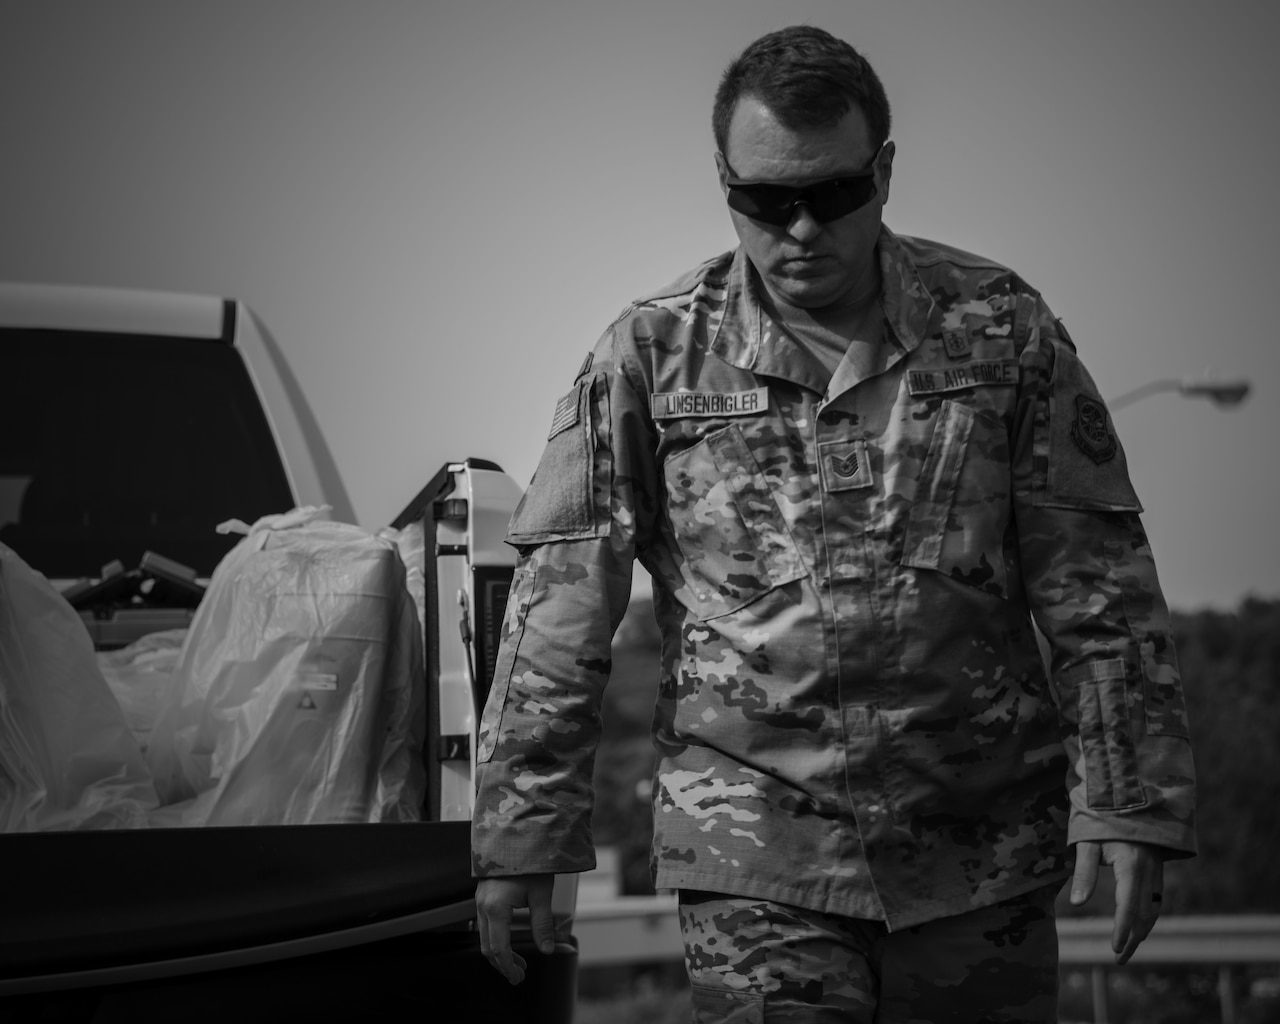 An airman in sunglasses walks away from a pickup truck loaded with supplies.